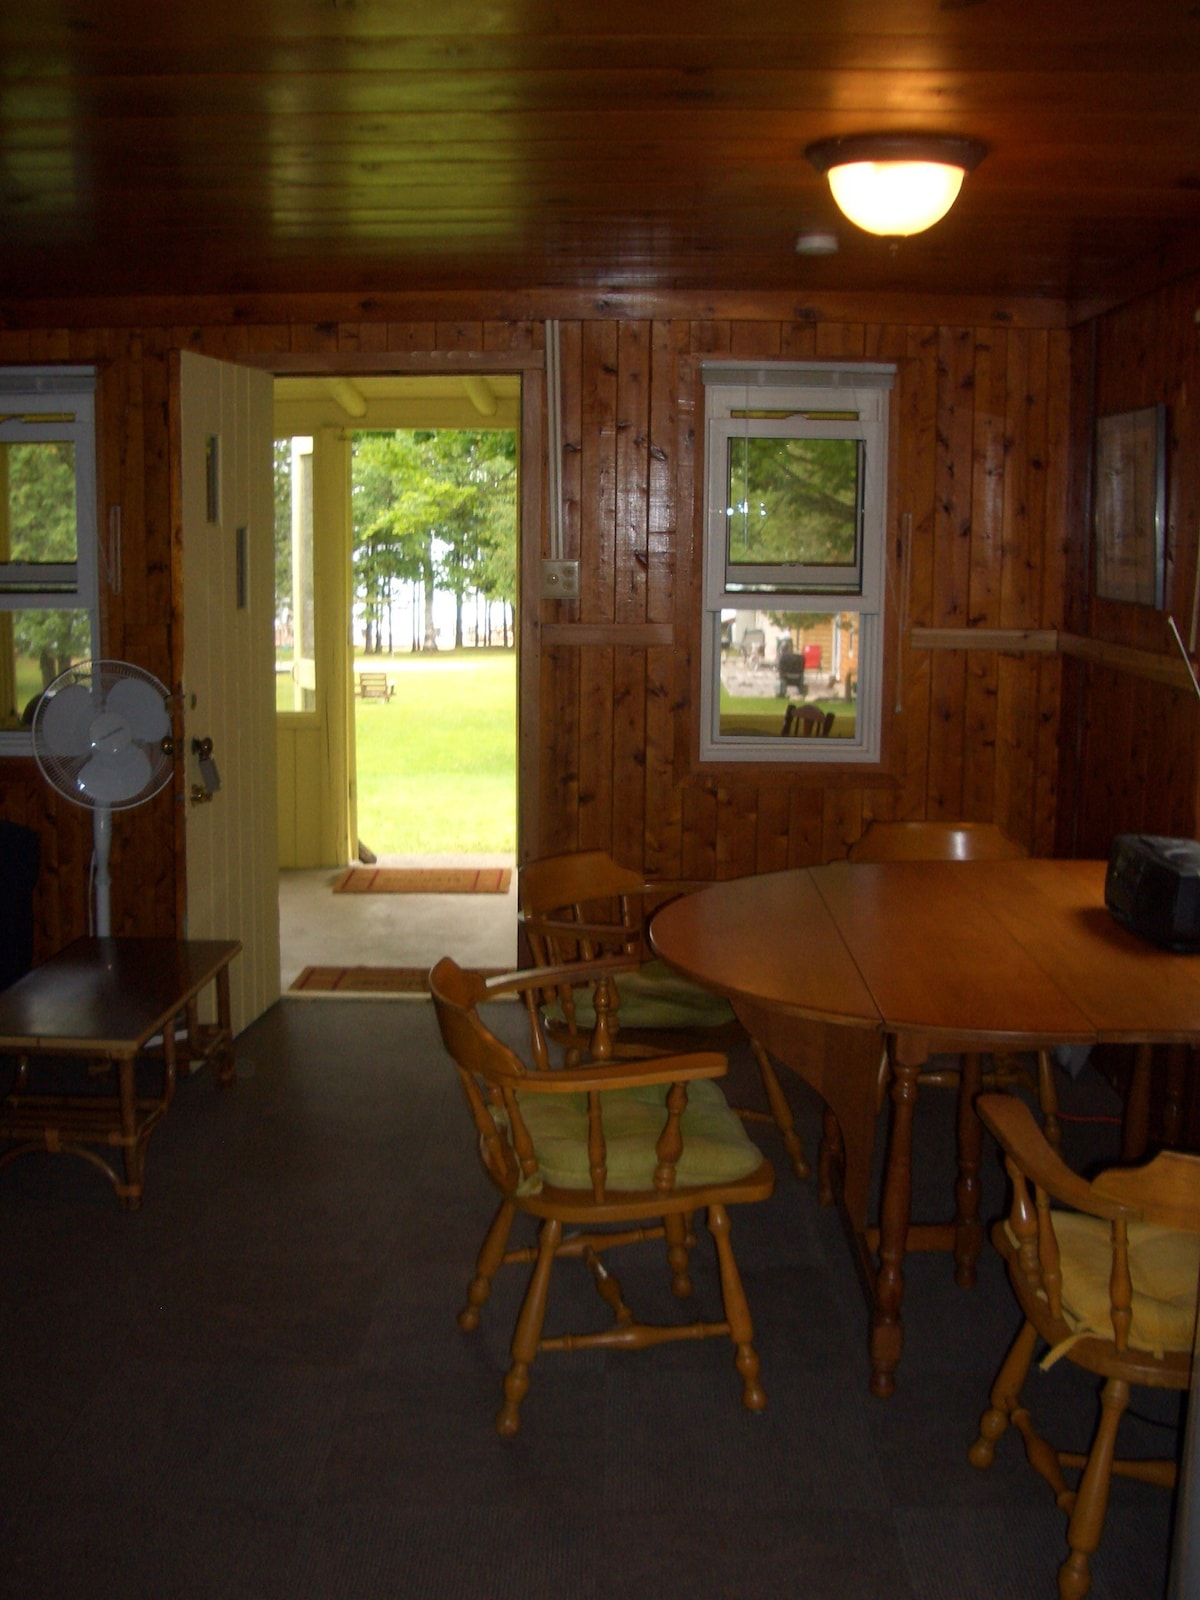 & Torch Lake Cottage 2 - Cabins for Rent in Alden Michigan United States